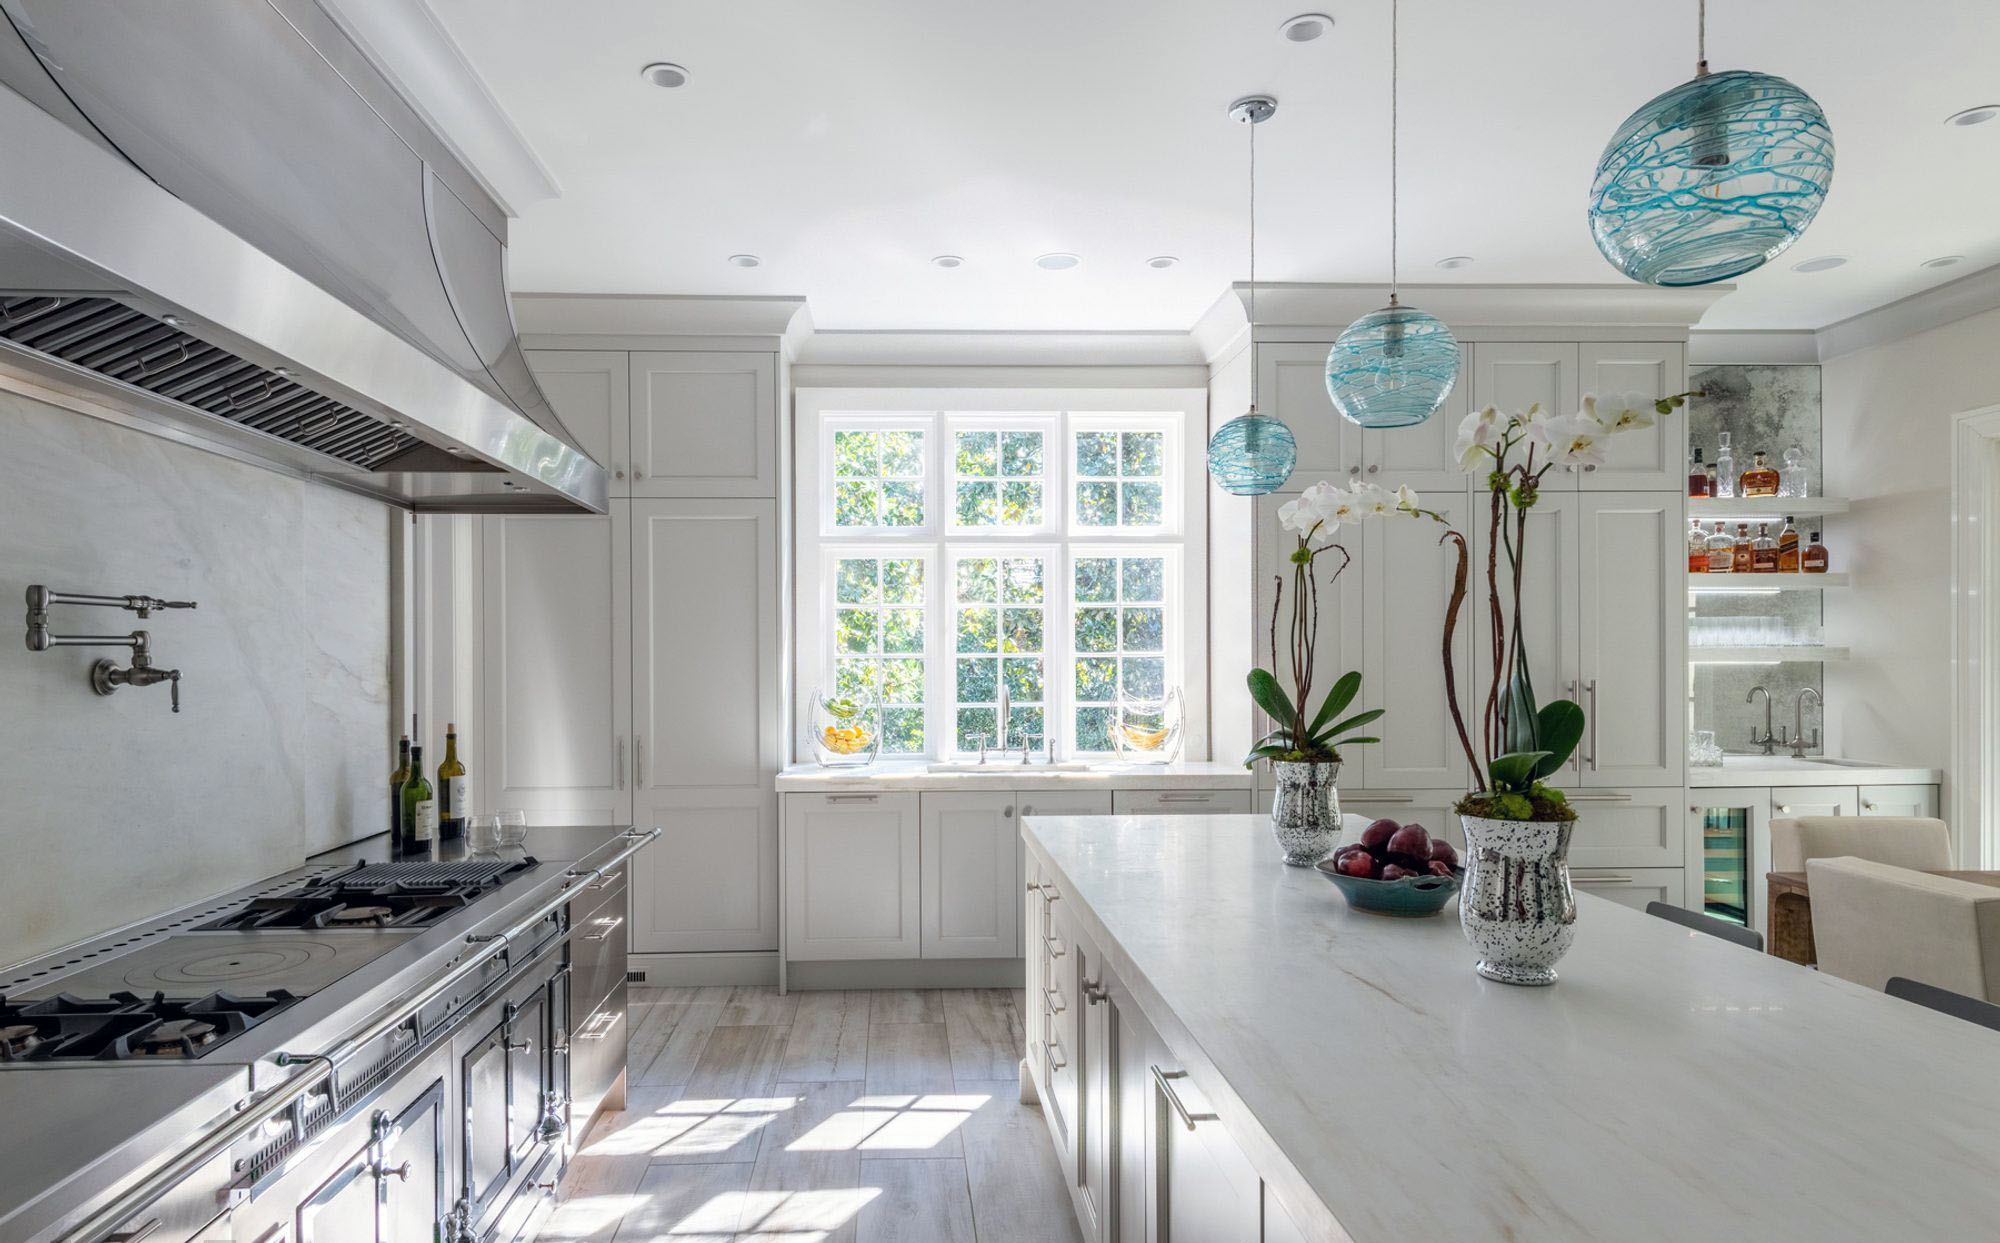 Stunning luxury kitchen with a white and gray color scheme.